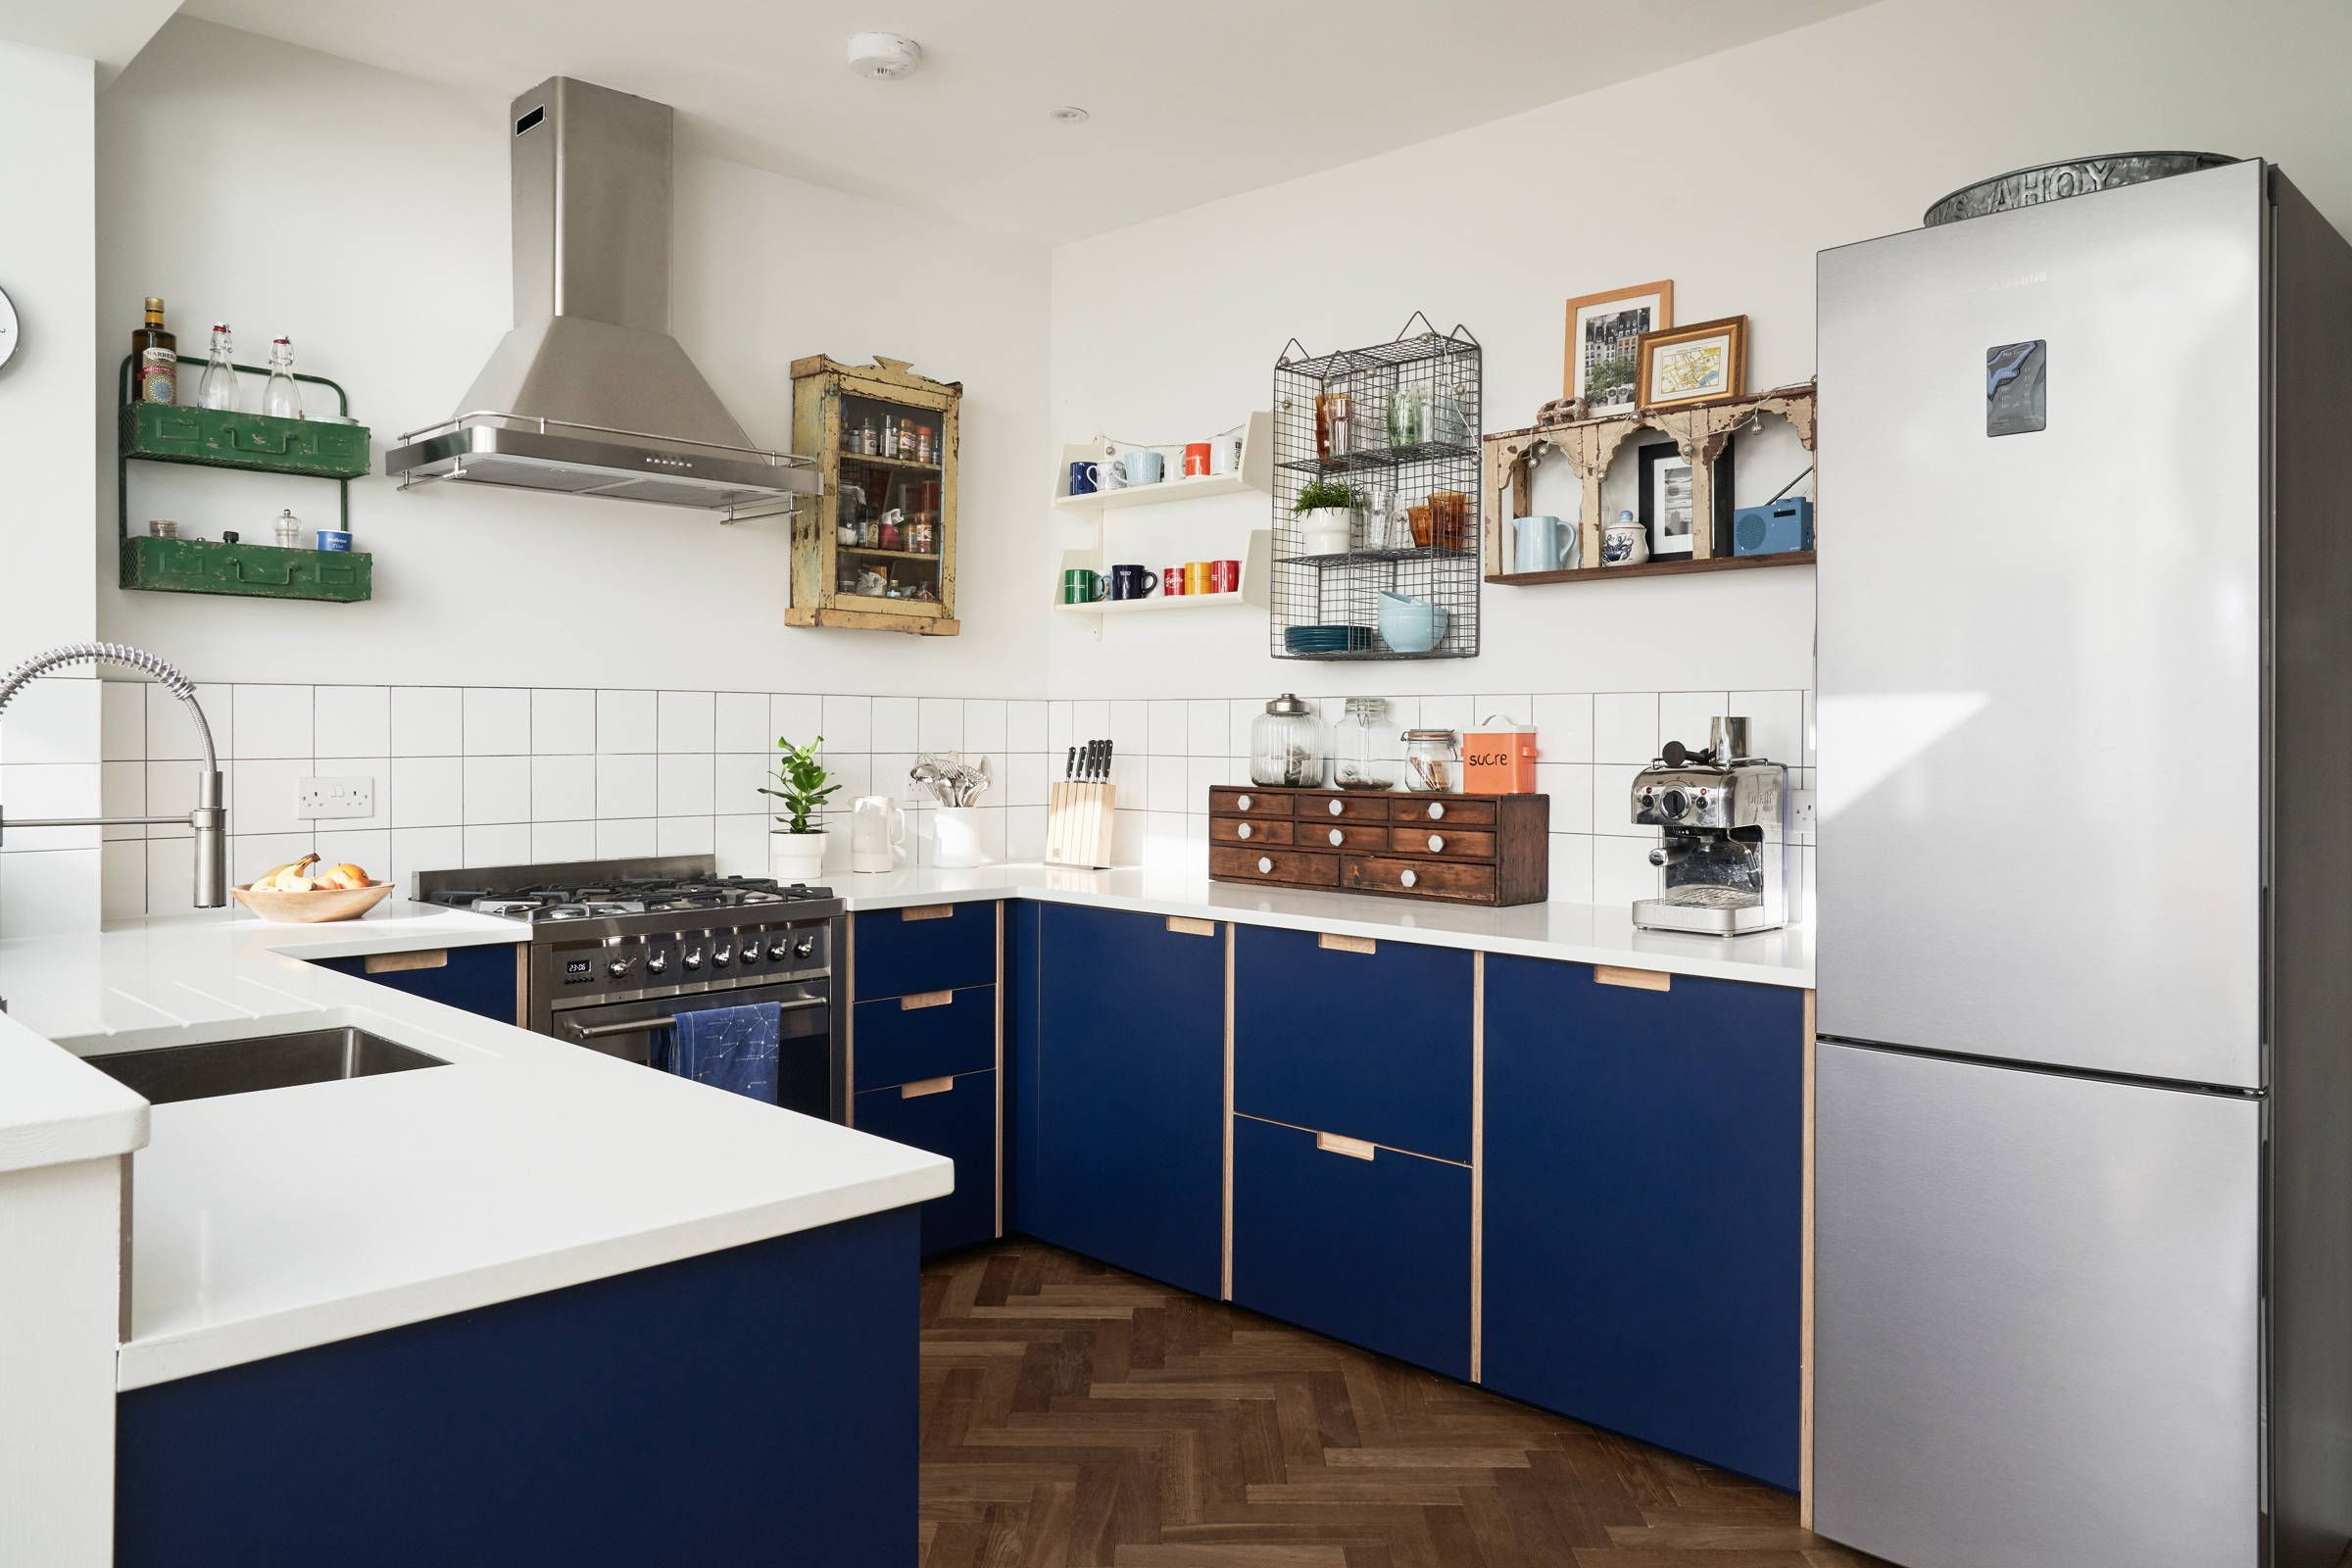 Formica Faced Plywood Kitchen In Navy Blue By Plykea Kitchen Design Small Plywood Kitchen Small Kitchen Diner